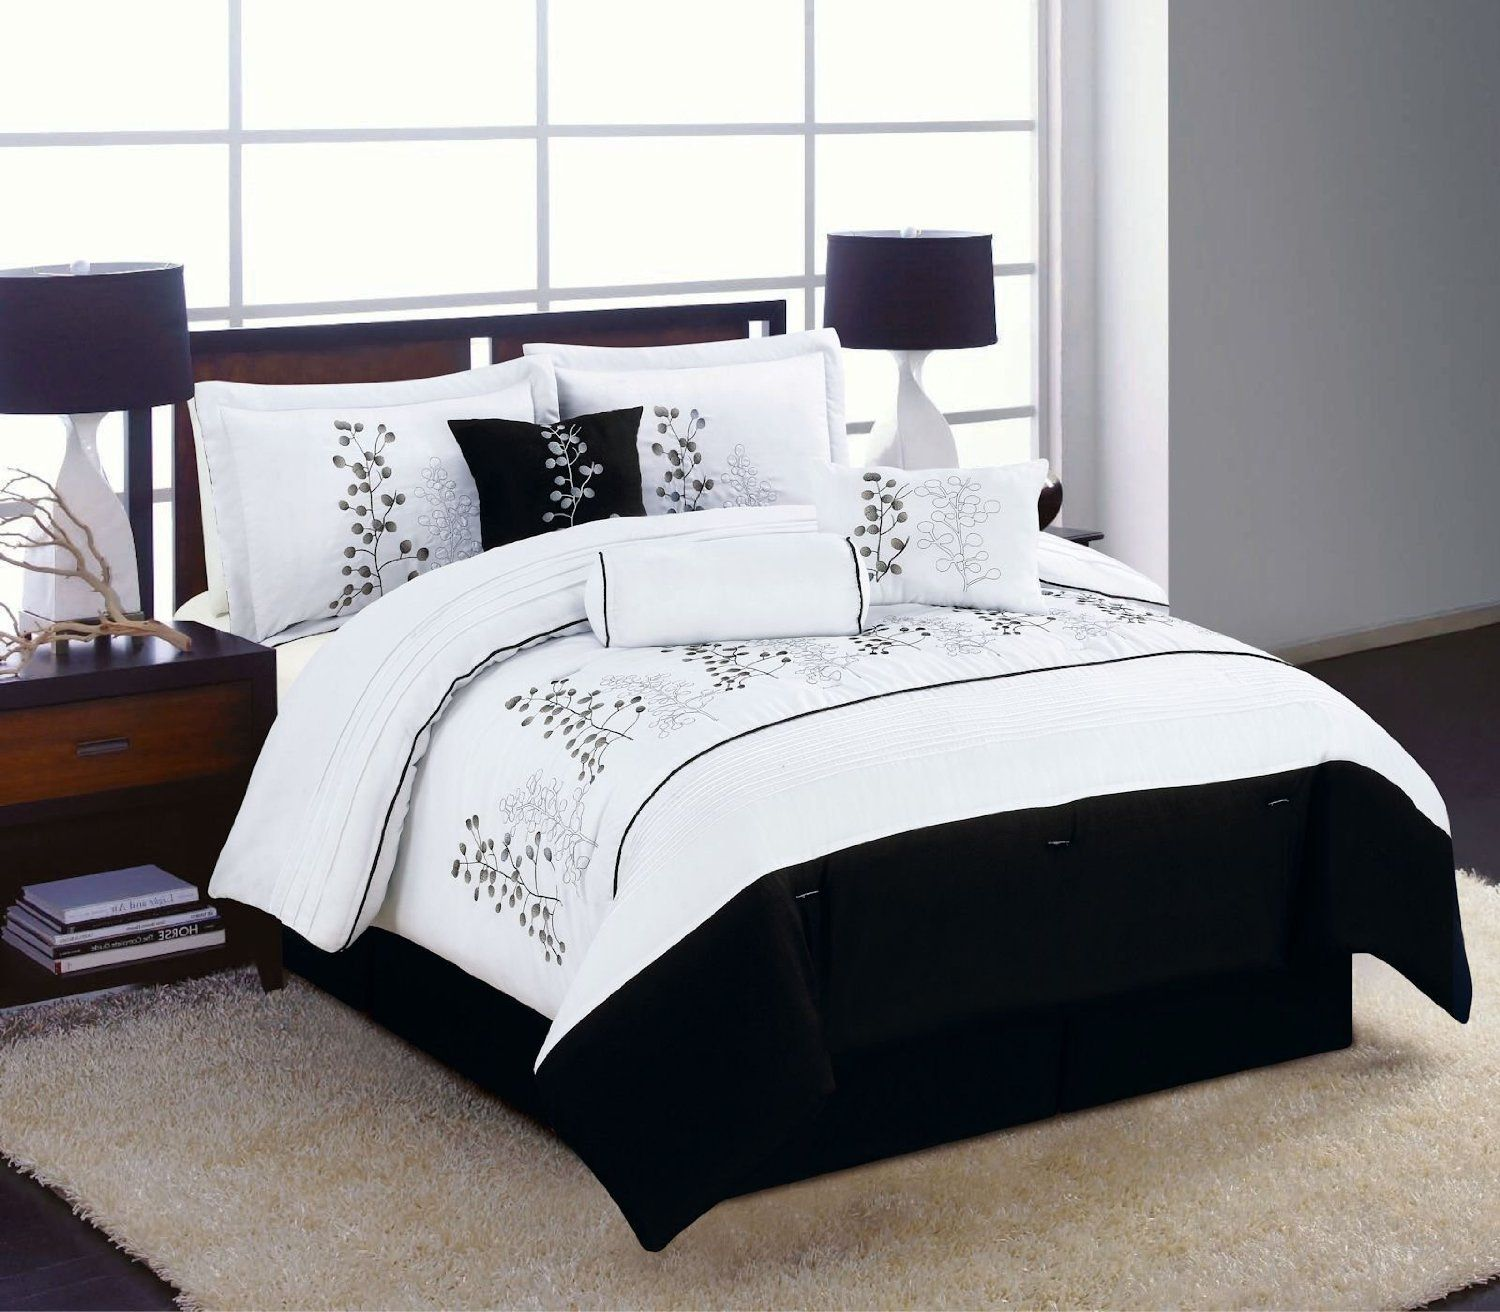 Awesome Bedroom with black and white comforter sets and laminate porcelain floor also curtain and sidetables